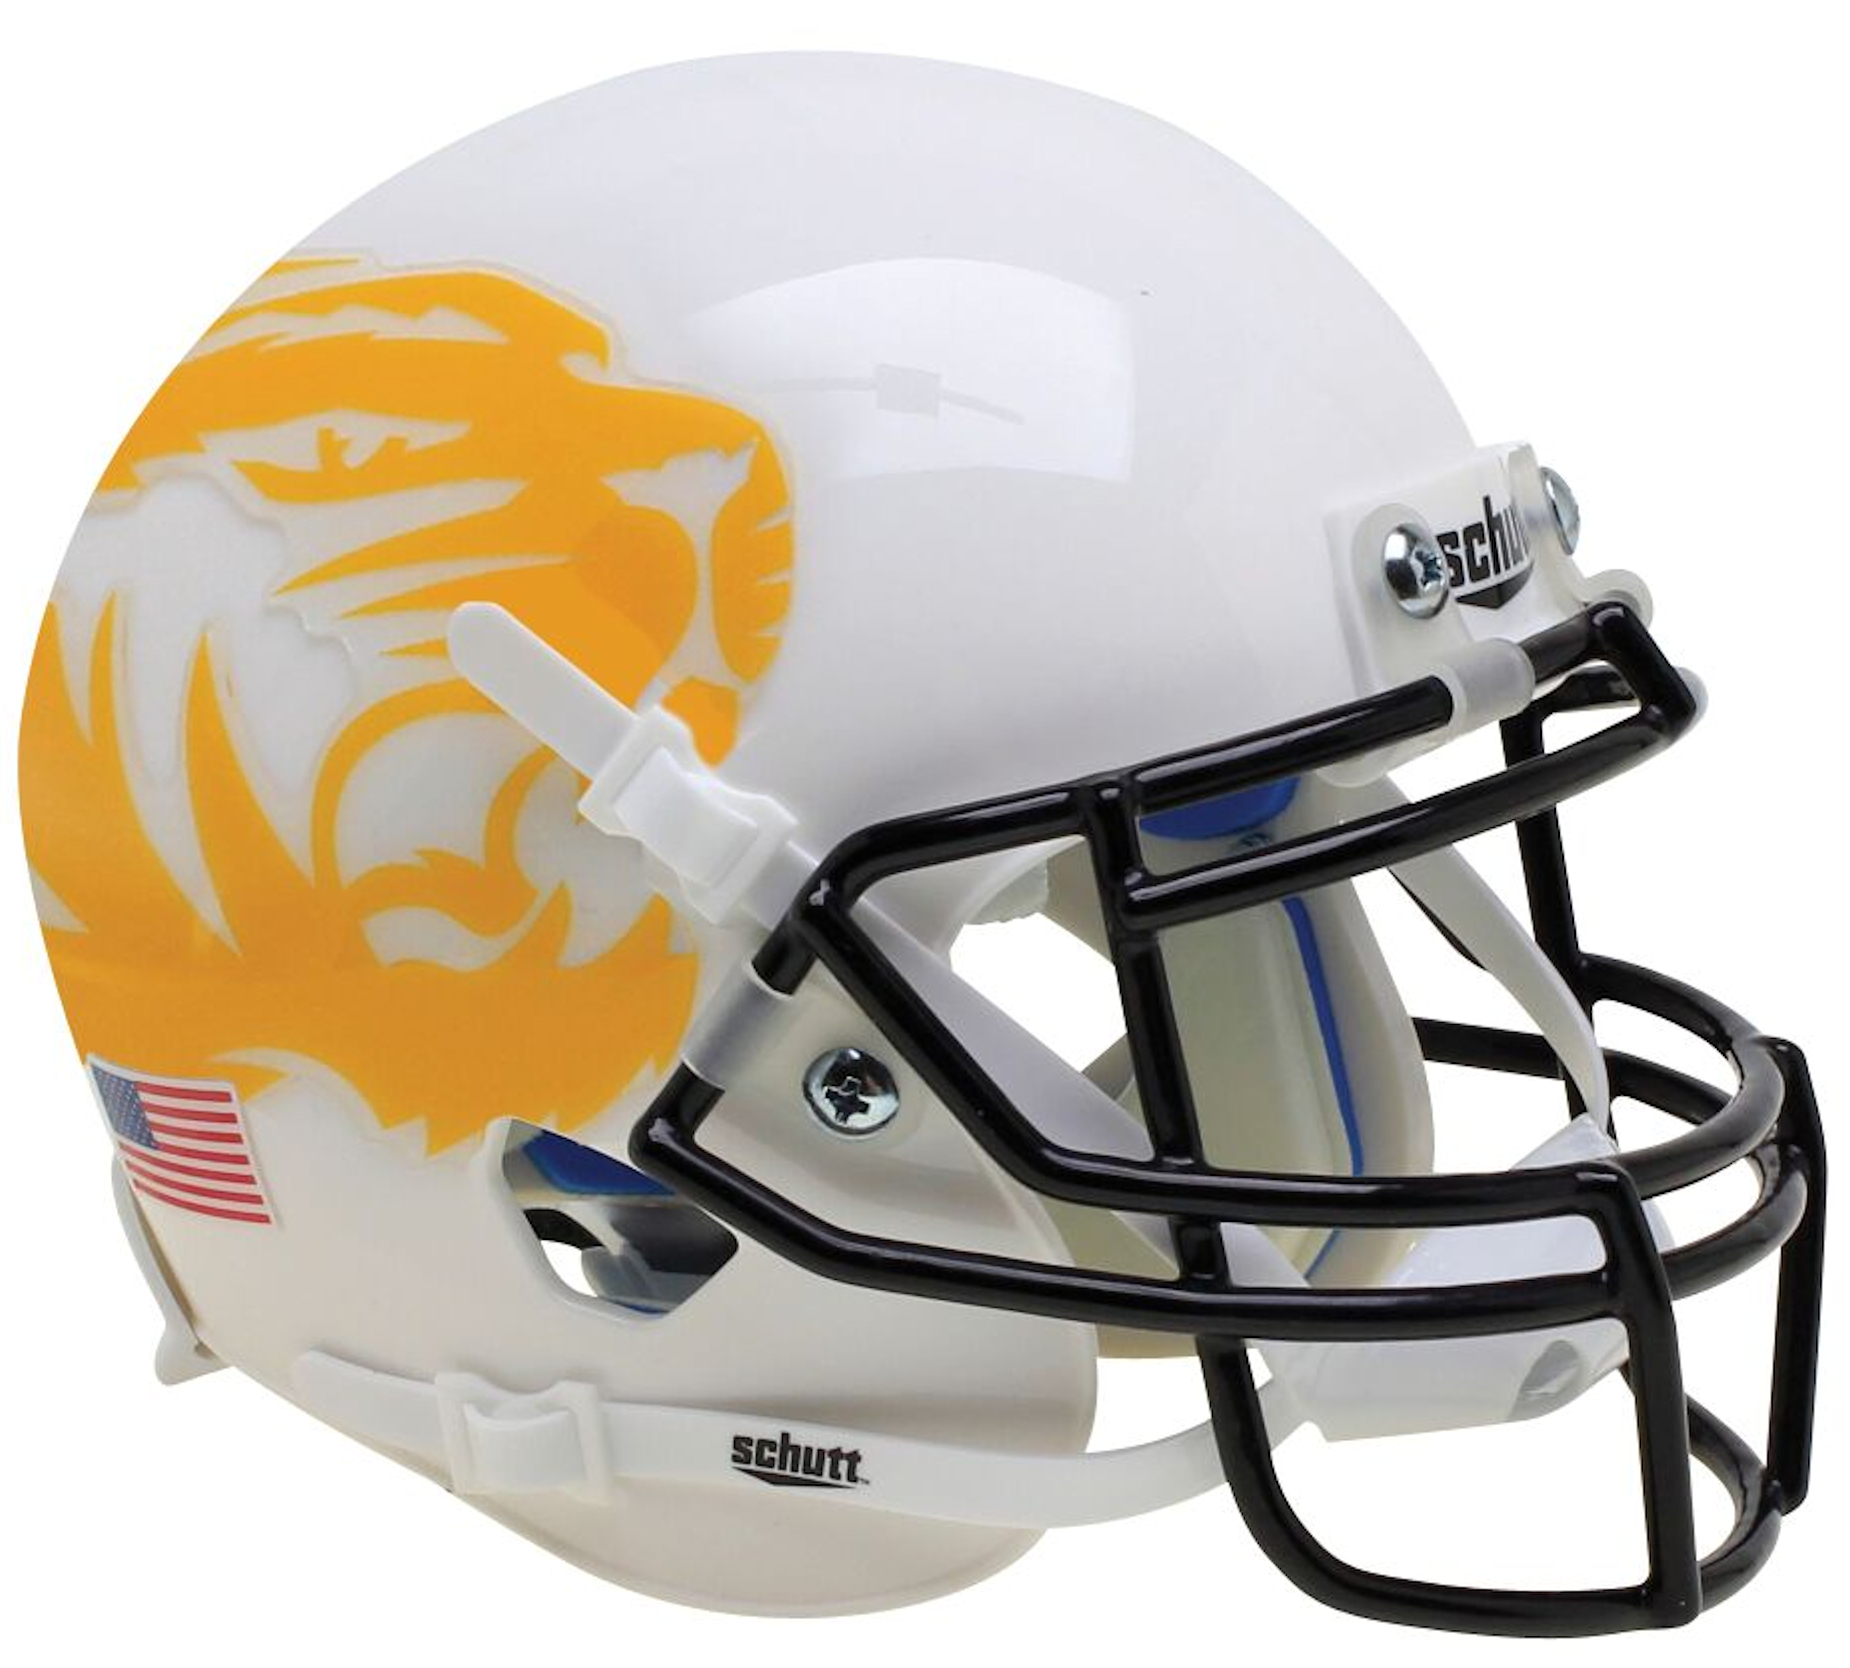 Missouri Tigers Miniature Football Helmet Desk Caddy <B>White Yellow Tiger</B>